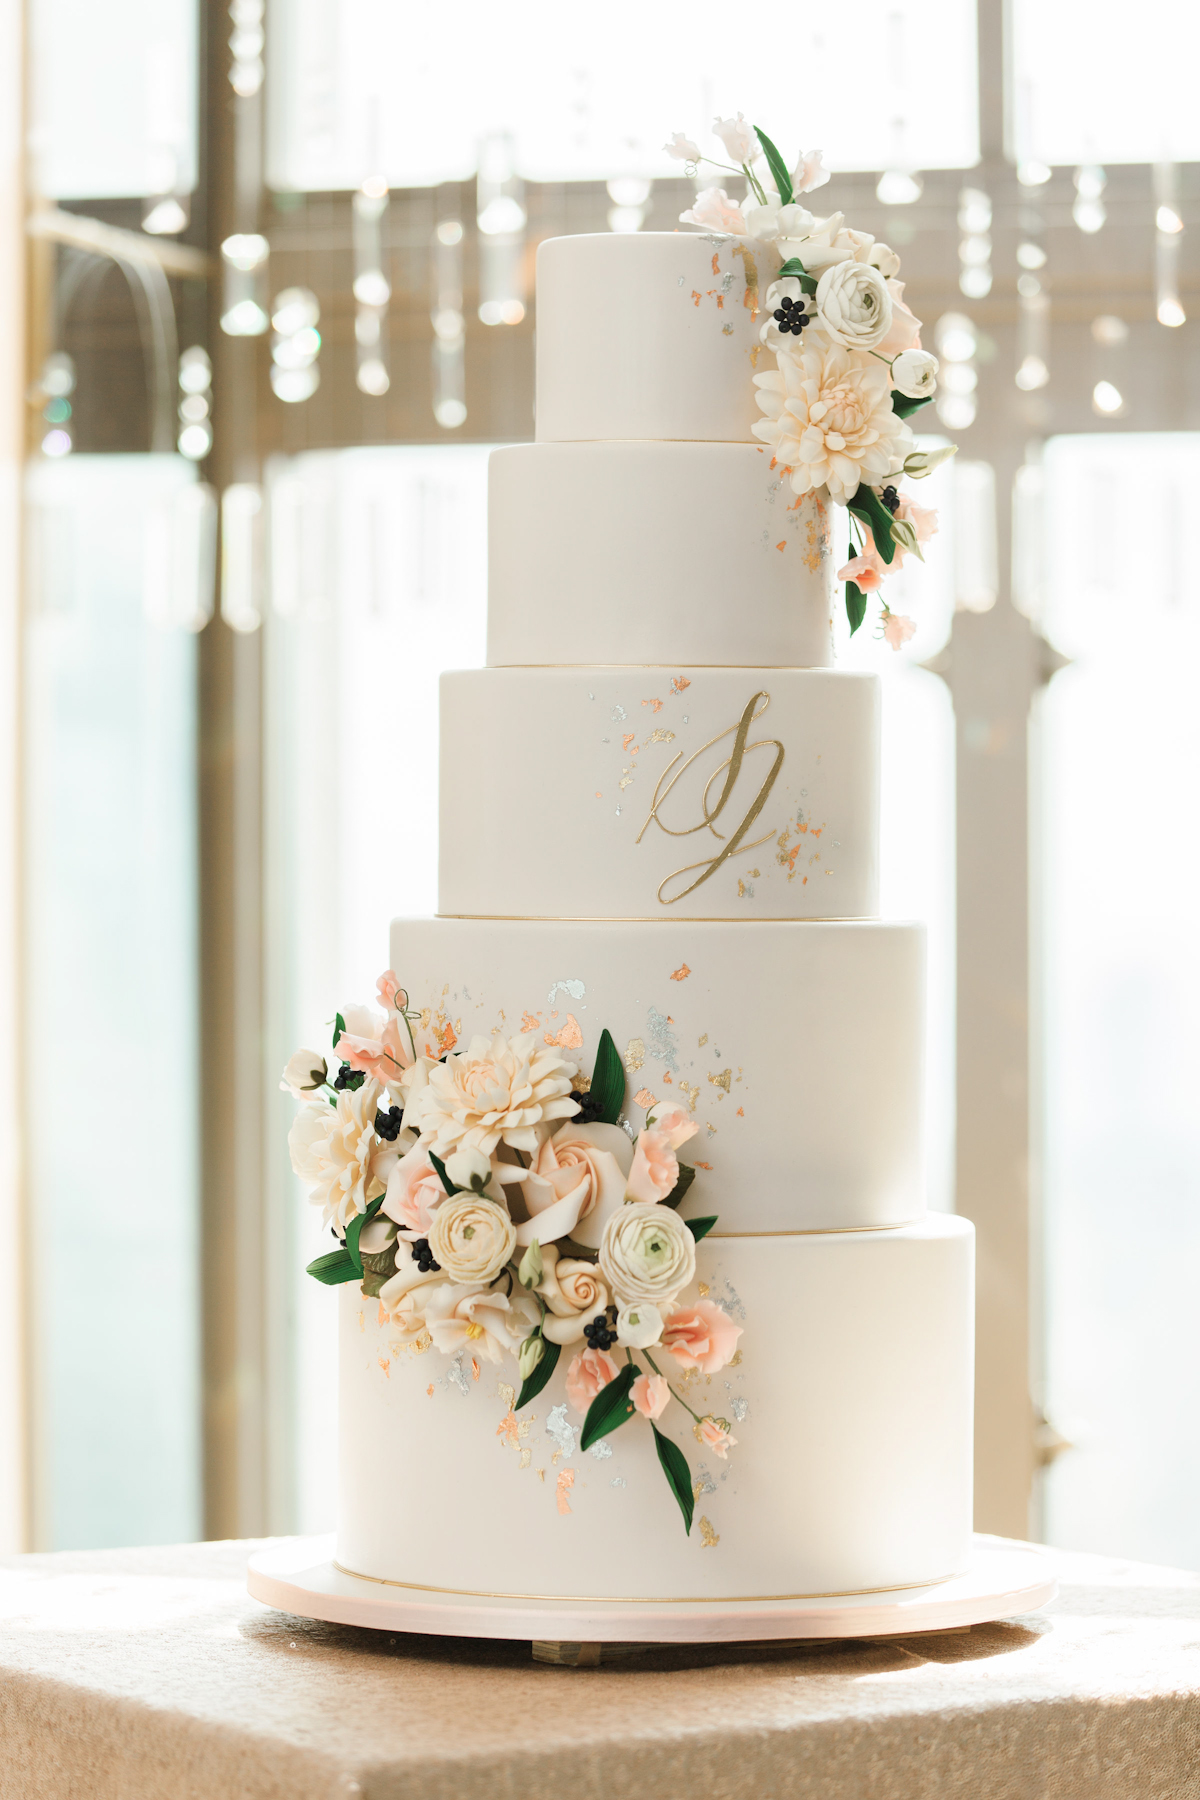 Wedding cake with flowers and metallic accents at Rainbow Room wedding